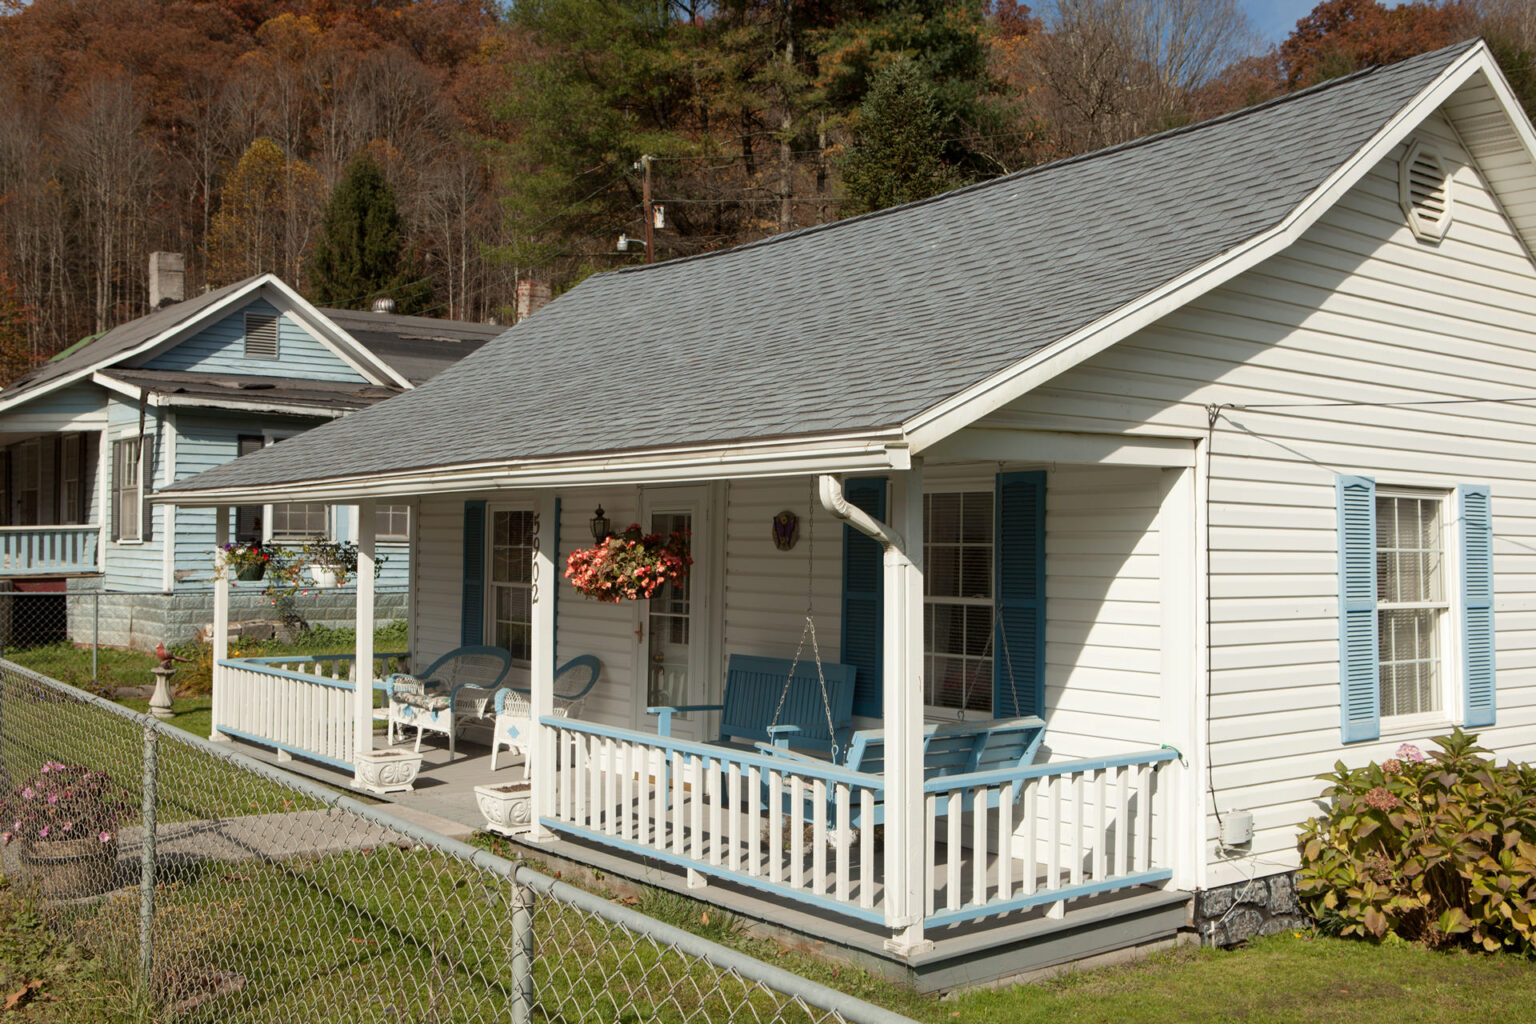 Residential housing, Wise County, Virginia, 2012